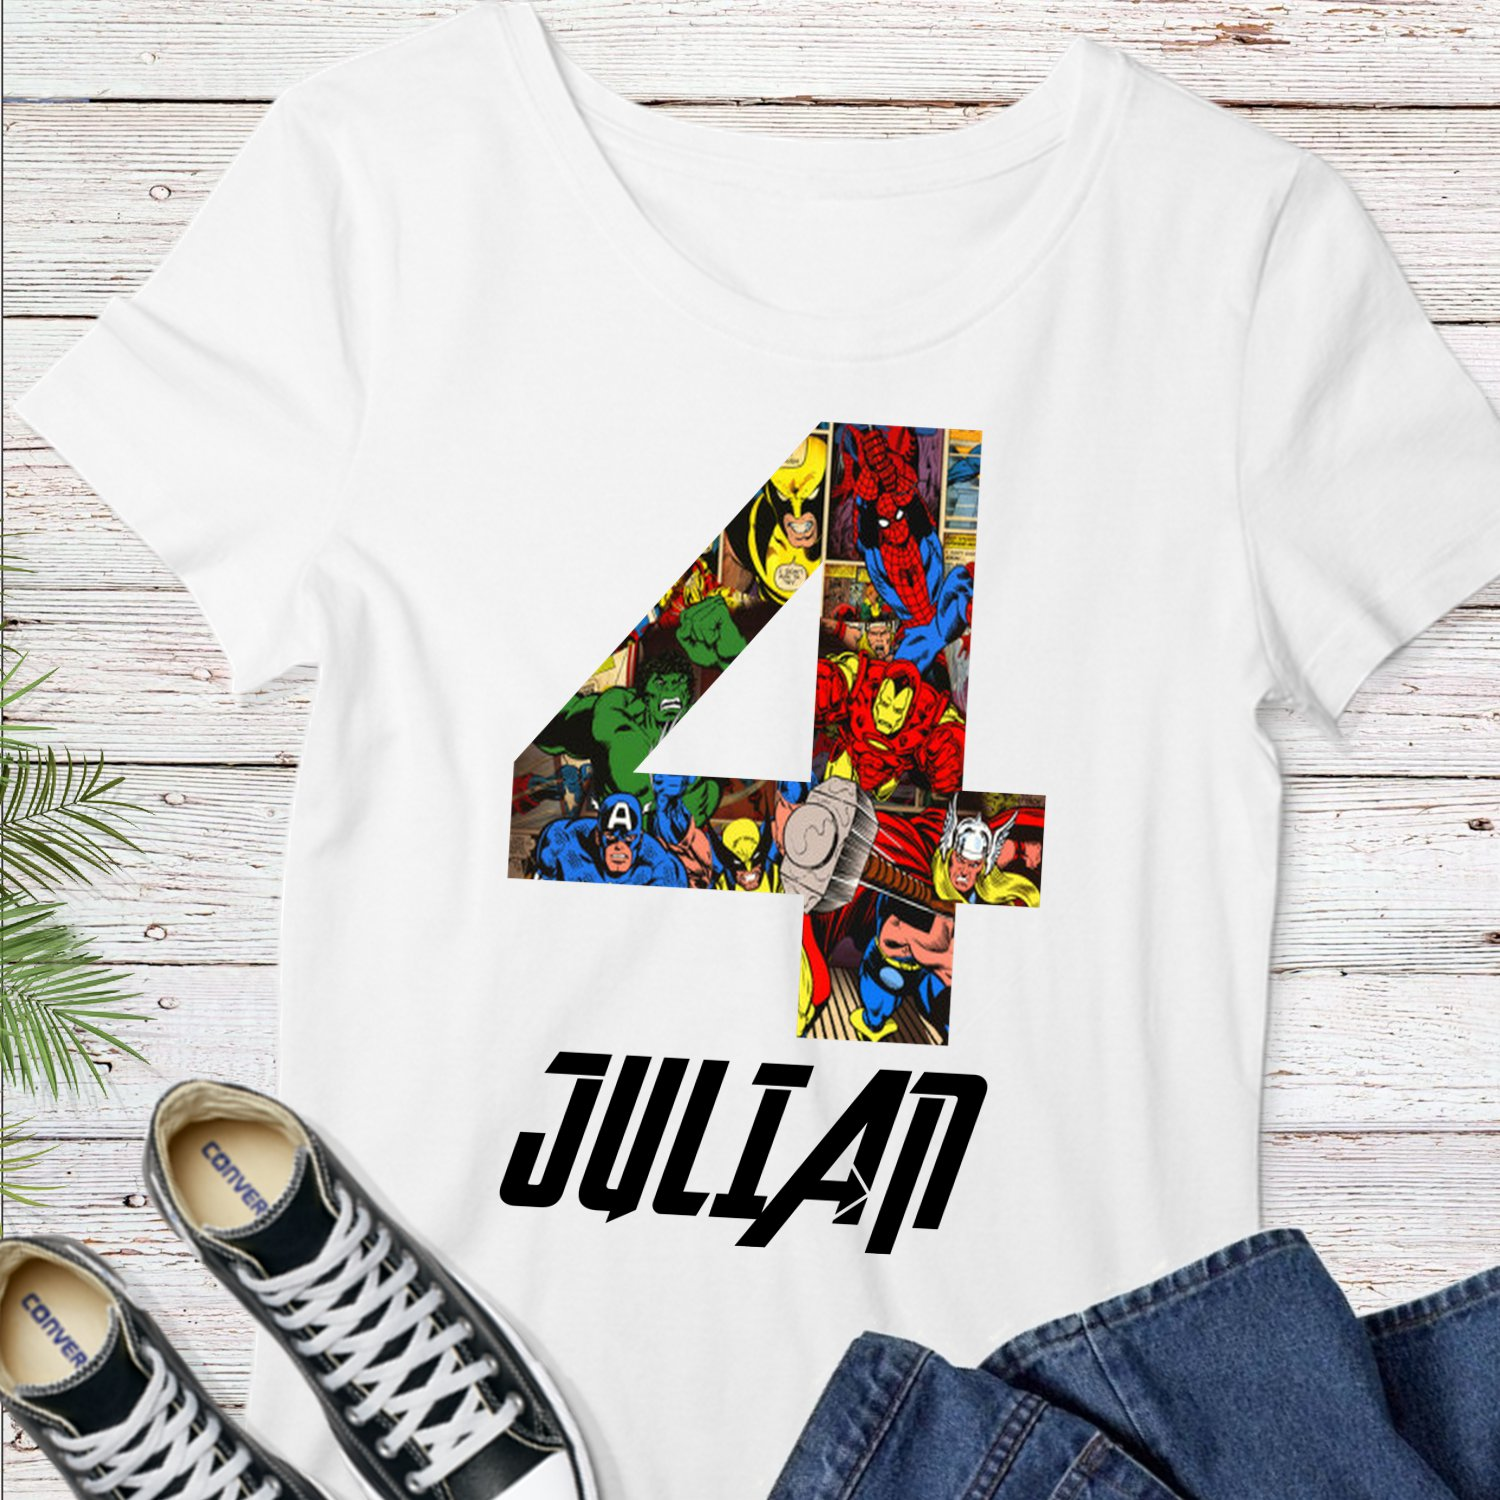 Personalized Marvel Superhero Comic Tee Shirt Digital Printable Transfer Iron-On Heat Ready to Press